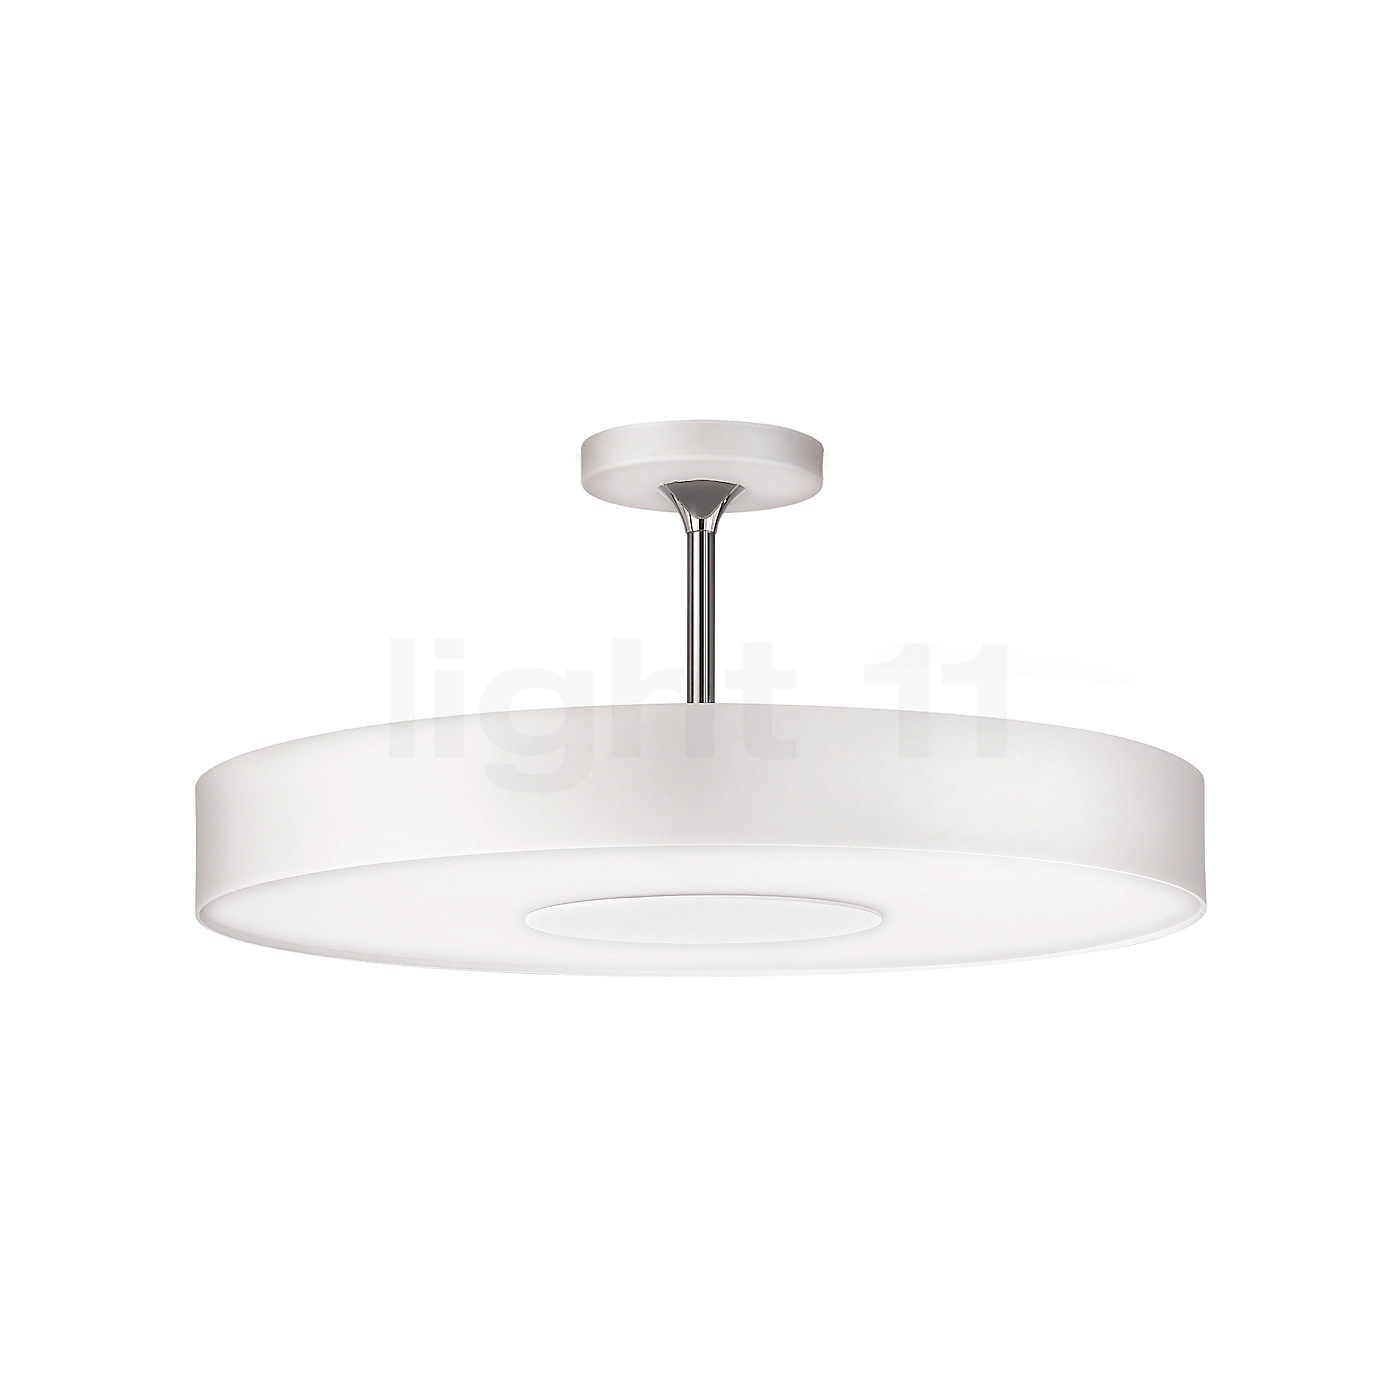 Philips InStyle Alexa Ceiling Light Ceiling lights buy at ...